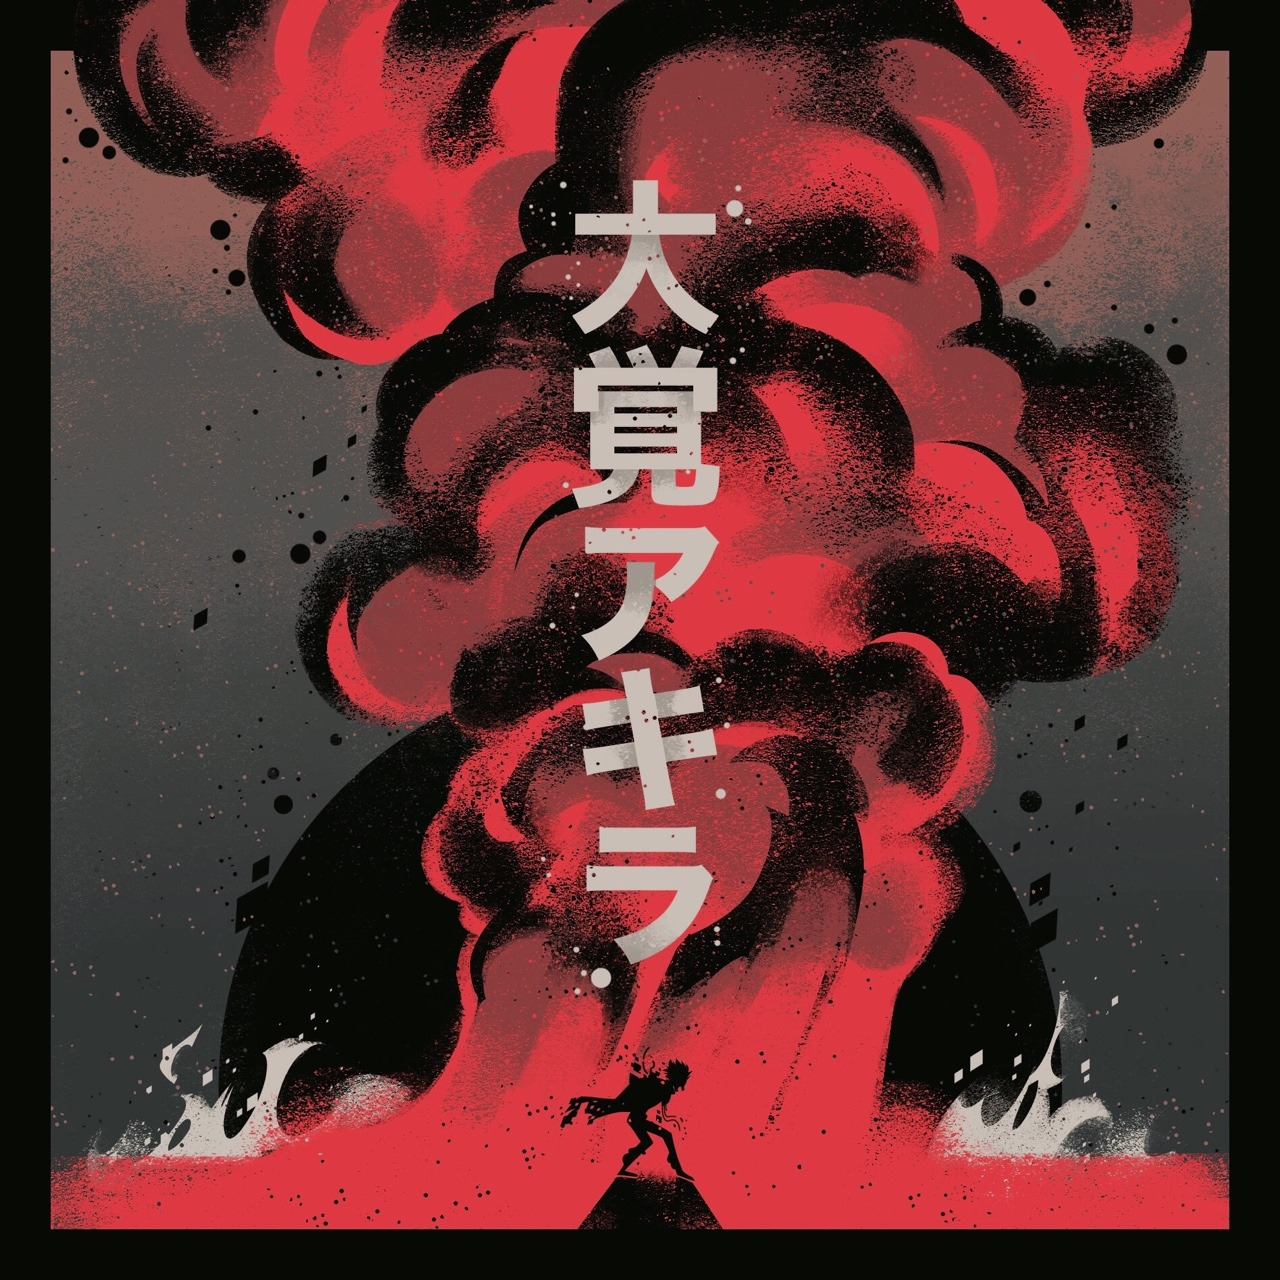 Piece for QPOP Gallery's AKIRA Tribute Show